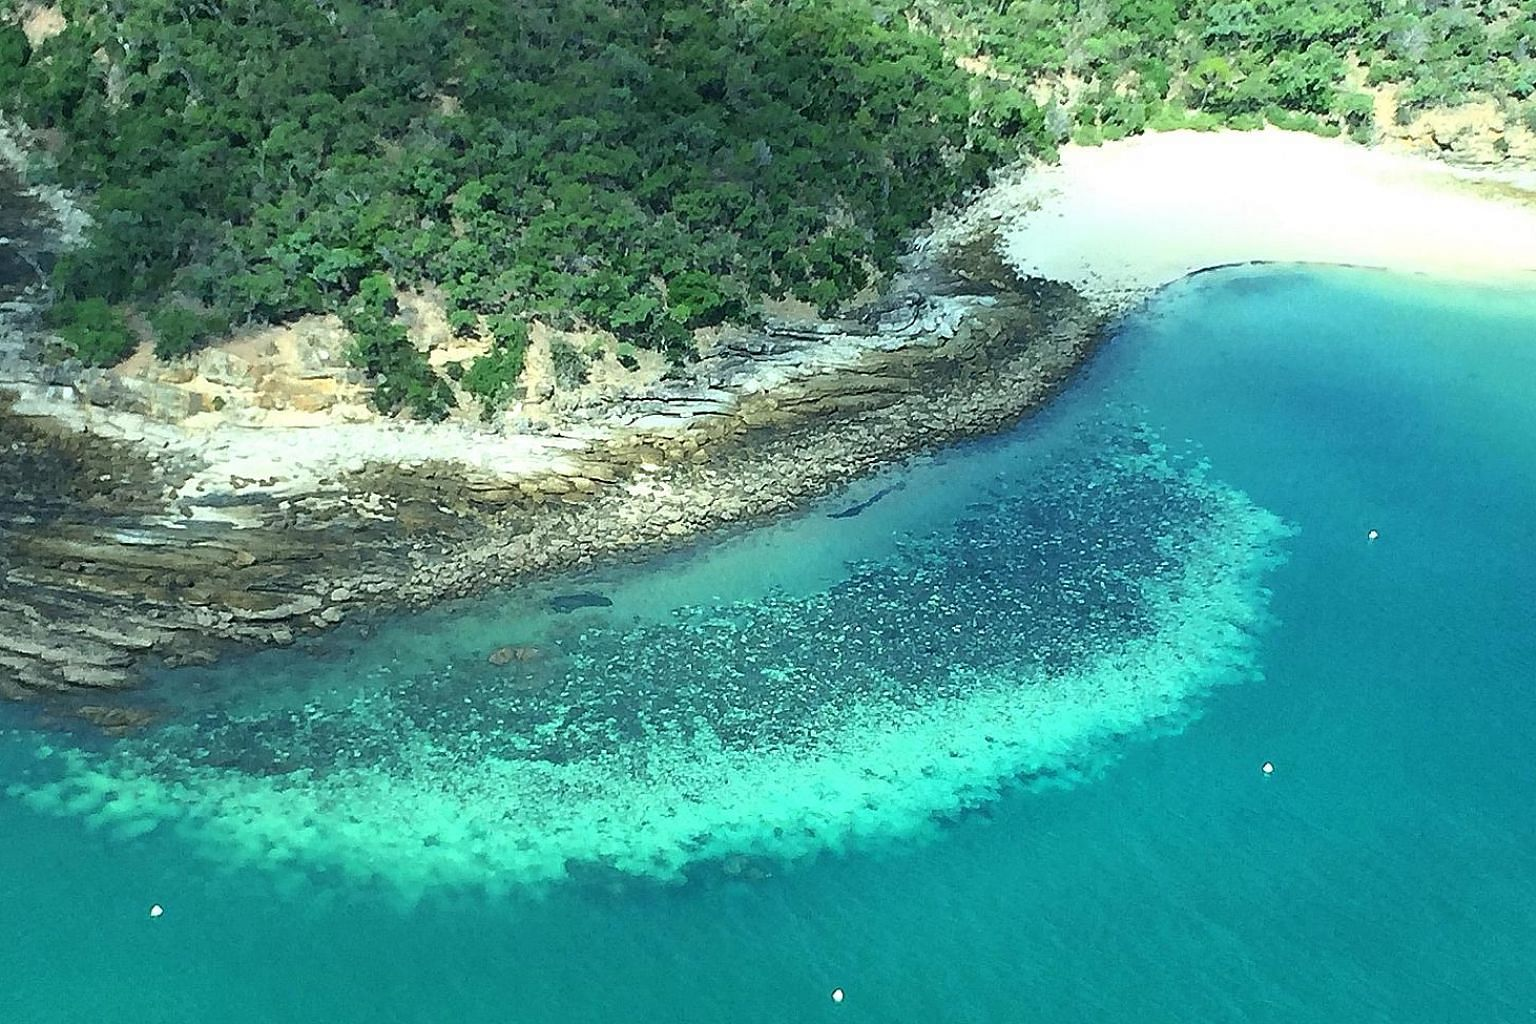 Coral scientist Terry Hughes conducting aerial surveys of Australian reefs. He recorded the various degrees of bleaching suffered by reef-building corals from about 150m above sea level.